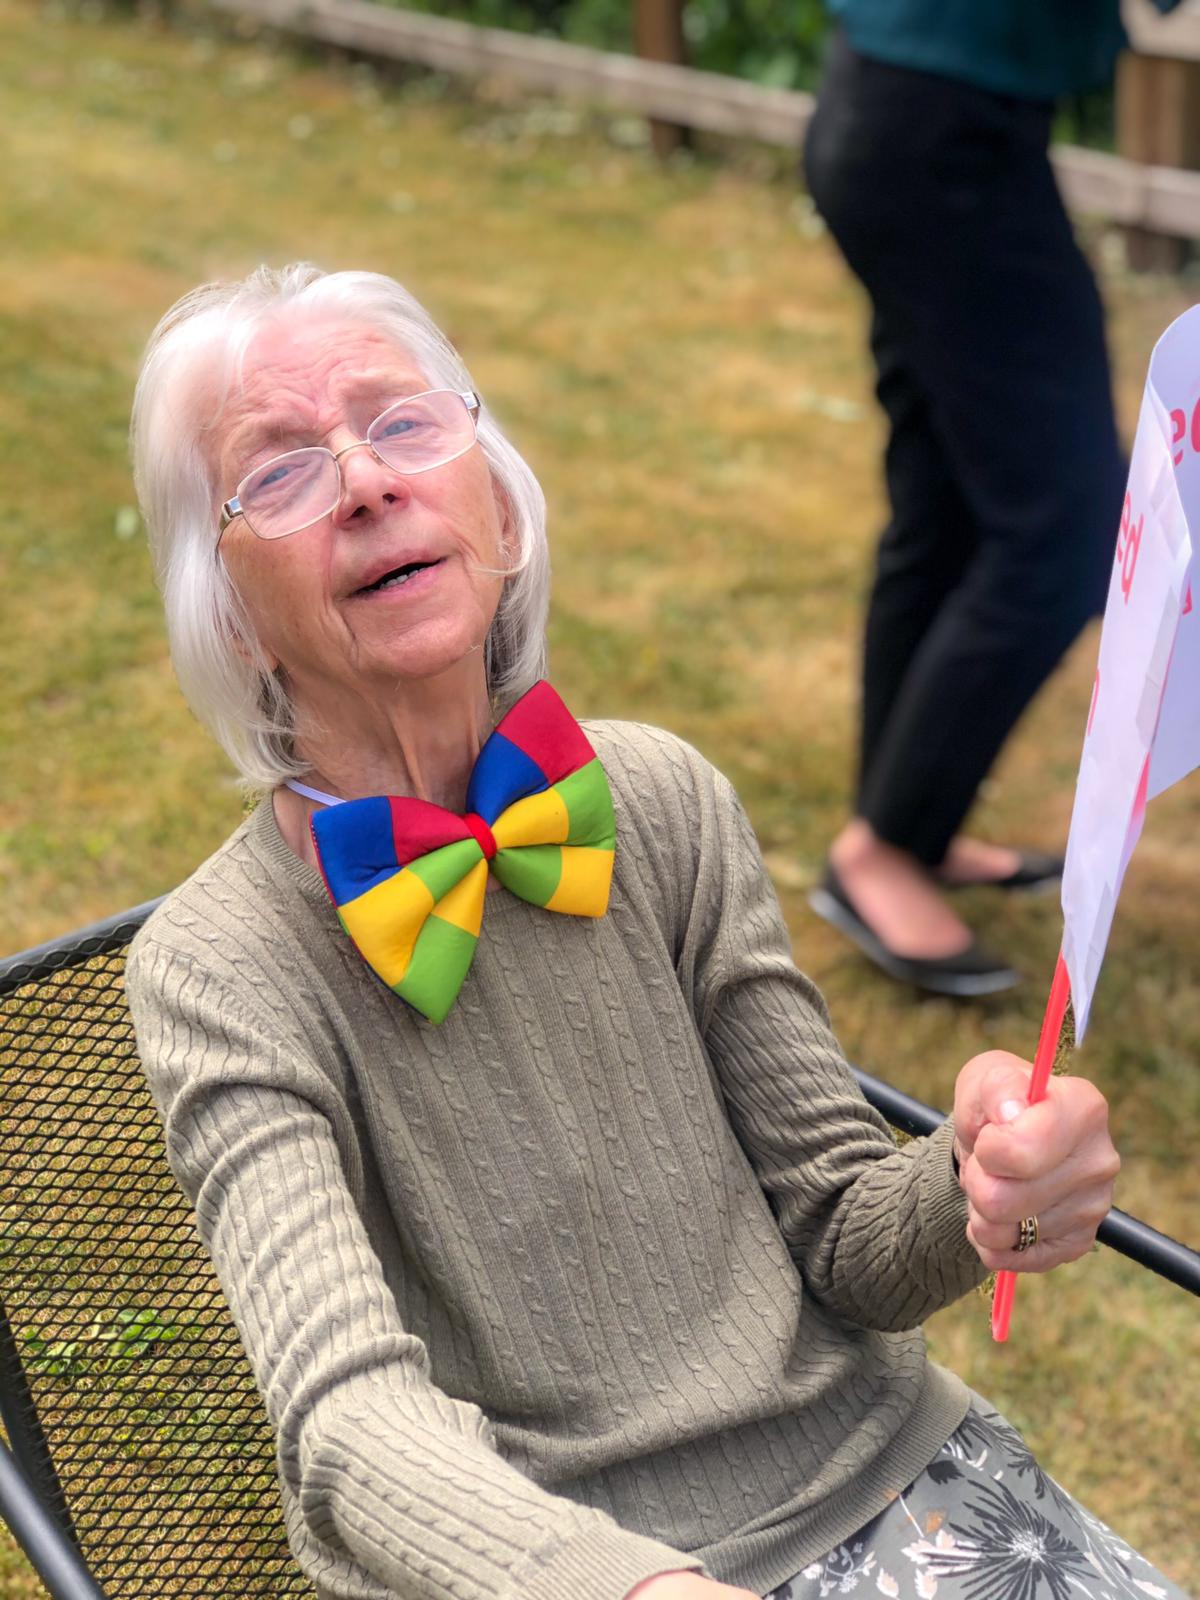 Sally enjoying sports day in a clown bow tie